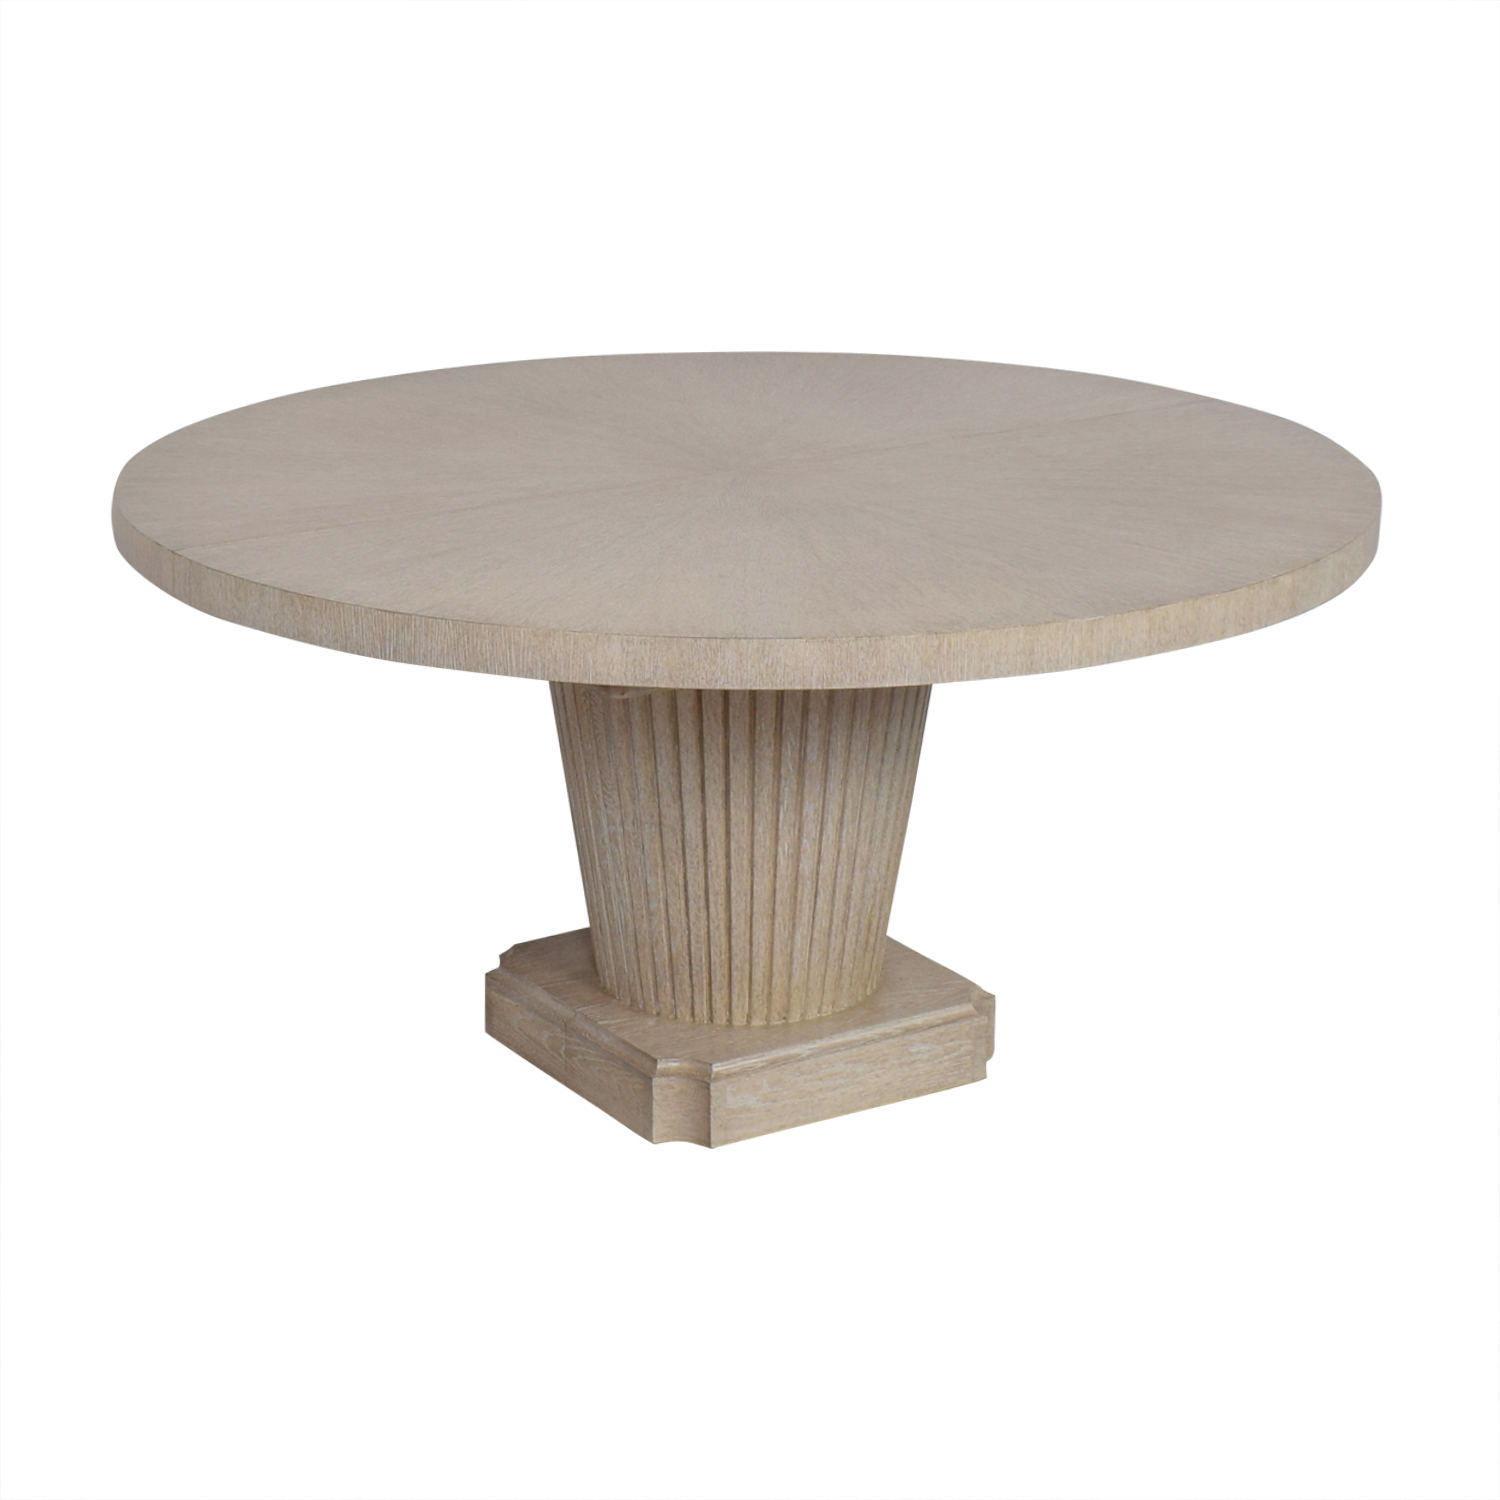 Nancy Corzine Nancy Corzine Sherman Dining Table price